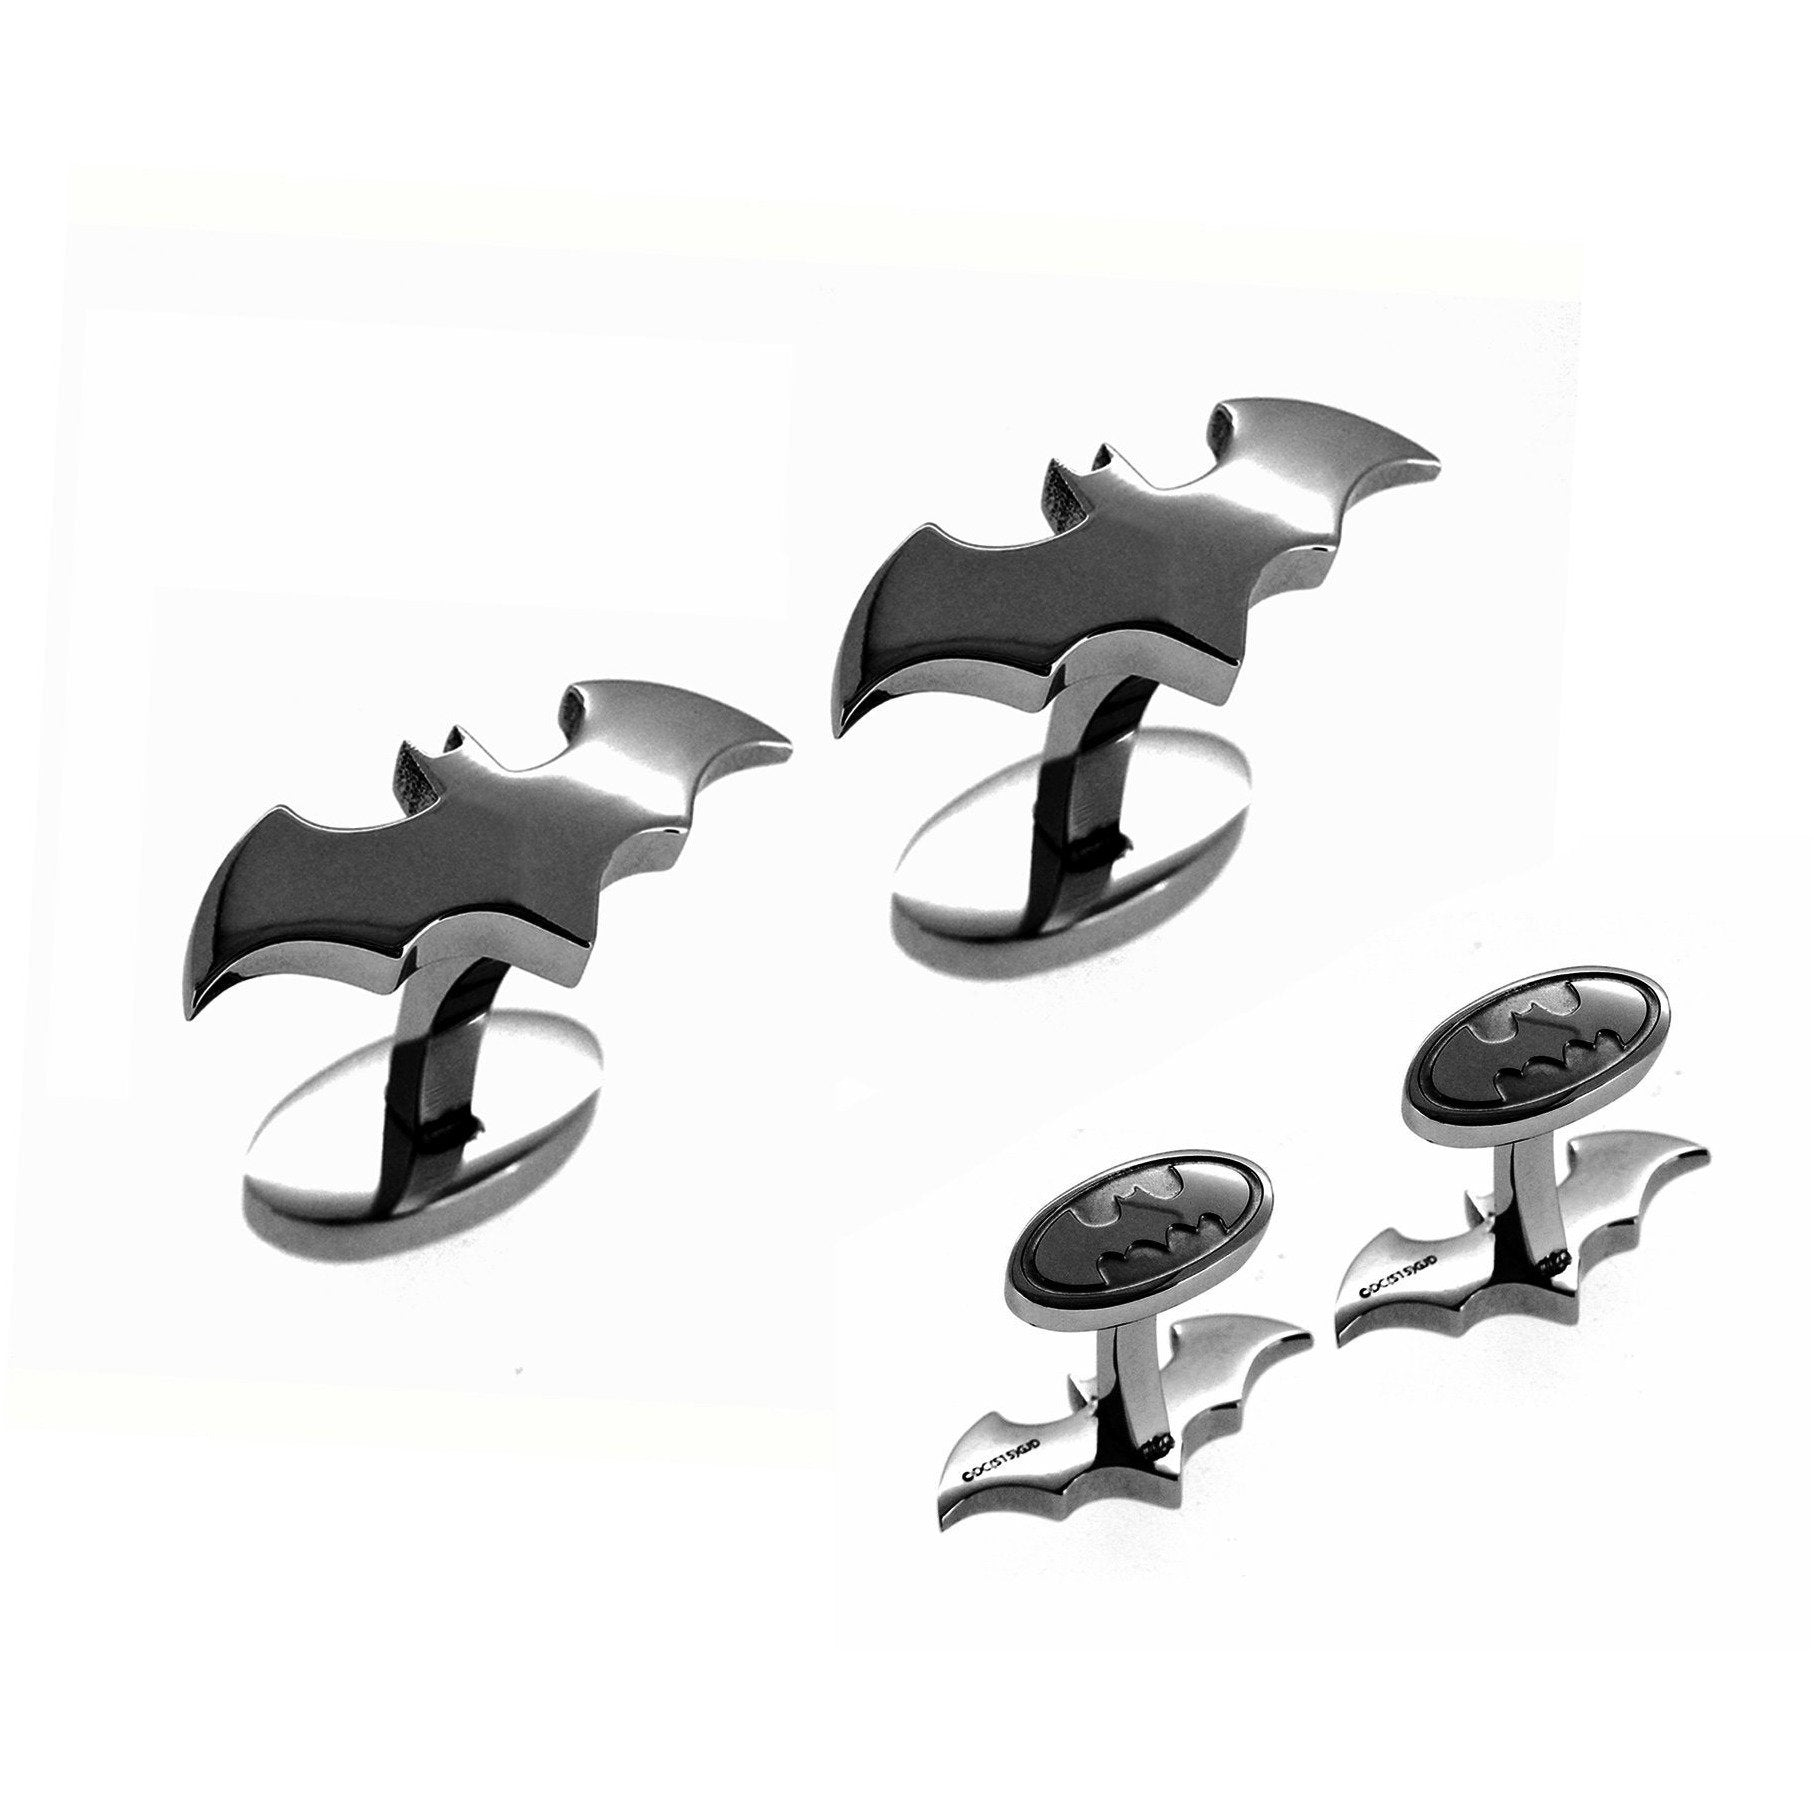 Batman Cufflinks Gunmetal, Novelty Cufflinks, Cuffed.com.au, CL5803, $65.00